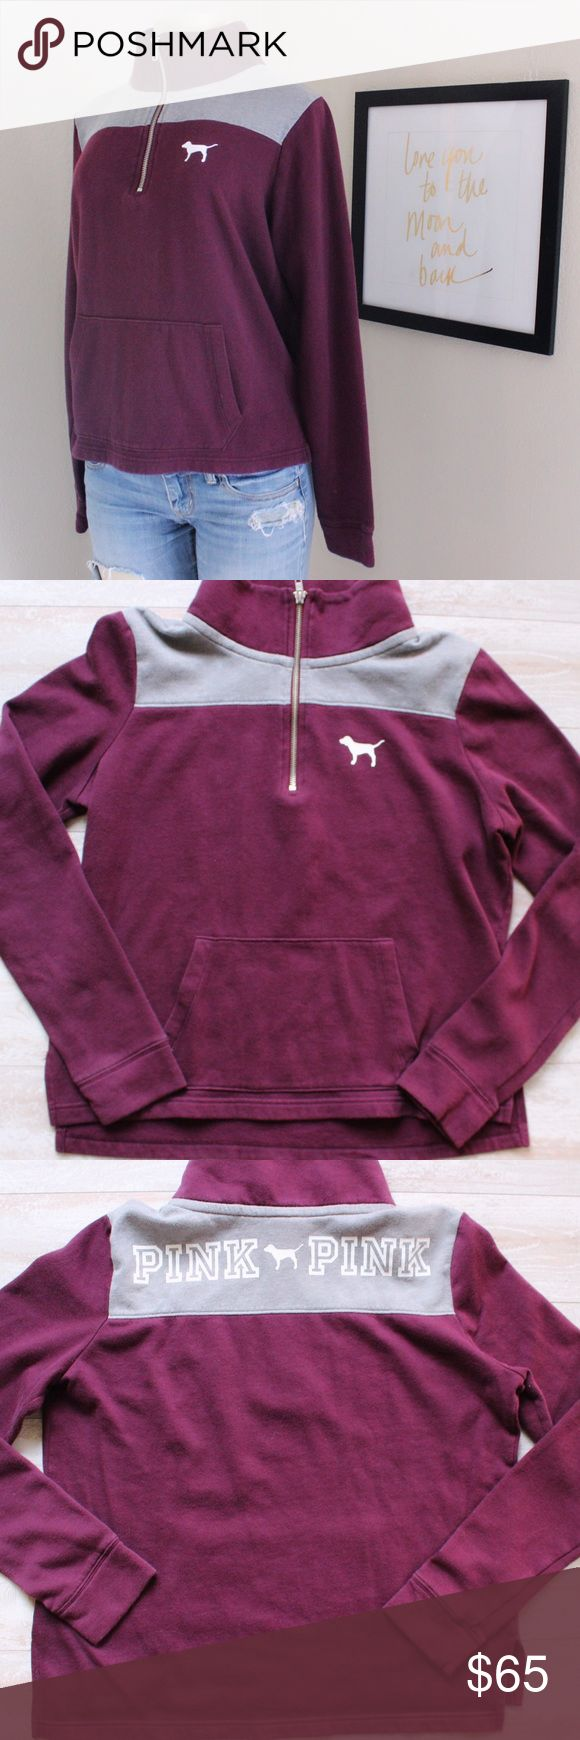 Victoria Secret Quarter Zip Sweater⭐️ Victoria Secret Quarter Zip Sweater size small, EUC, burgundy with pink logo on the bank, very little pilling, perfect boyfriend Quarter Zip sweater⭐️ PINK Victoria's Secret Sweaters